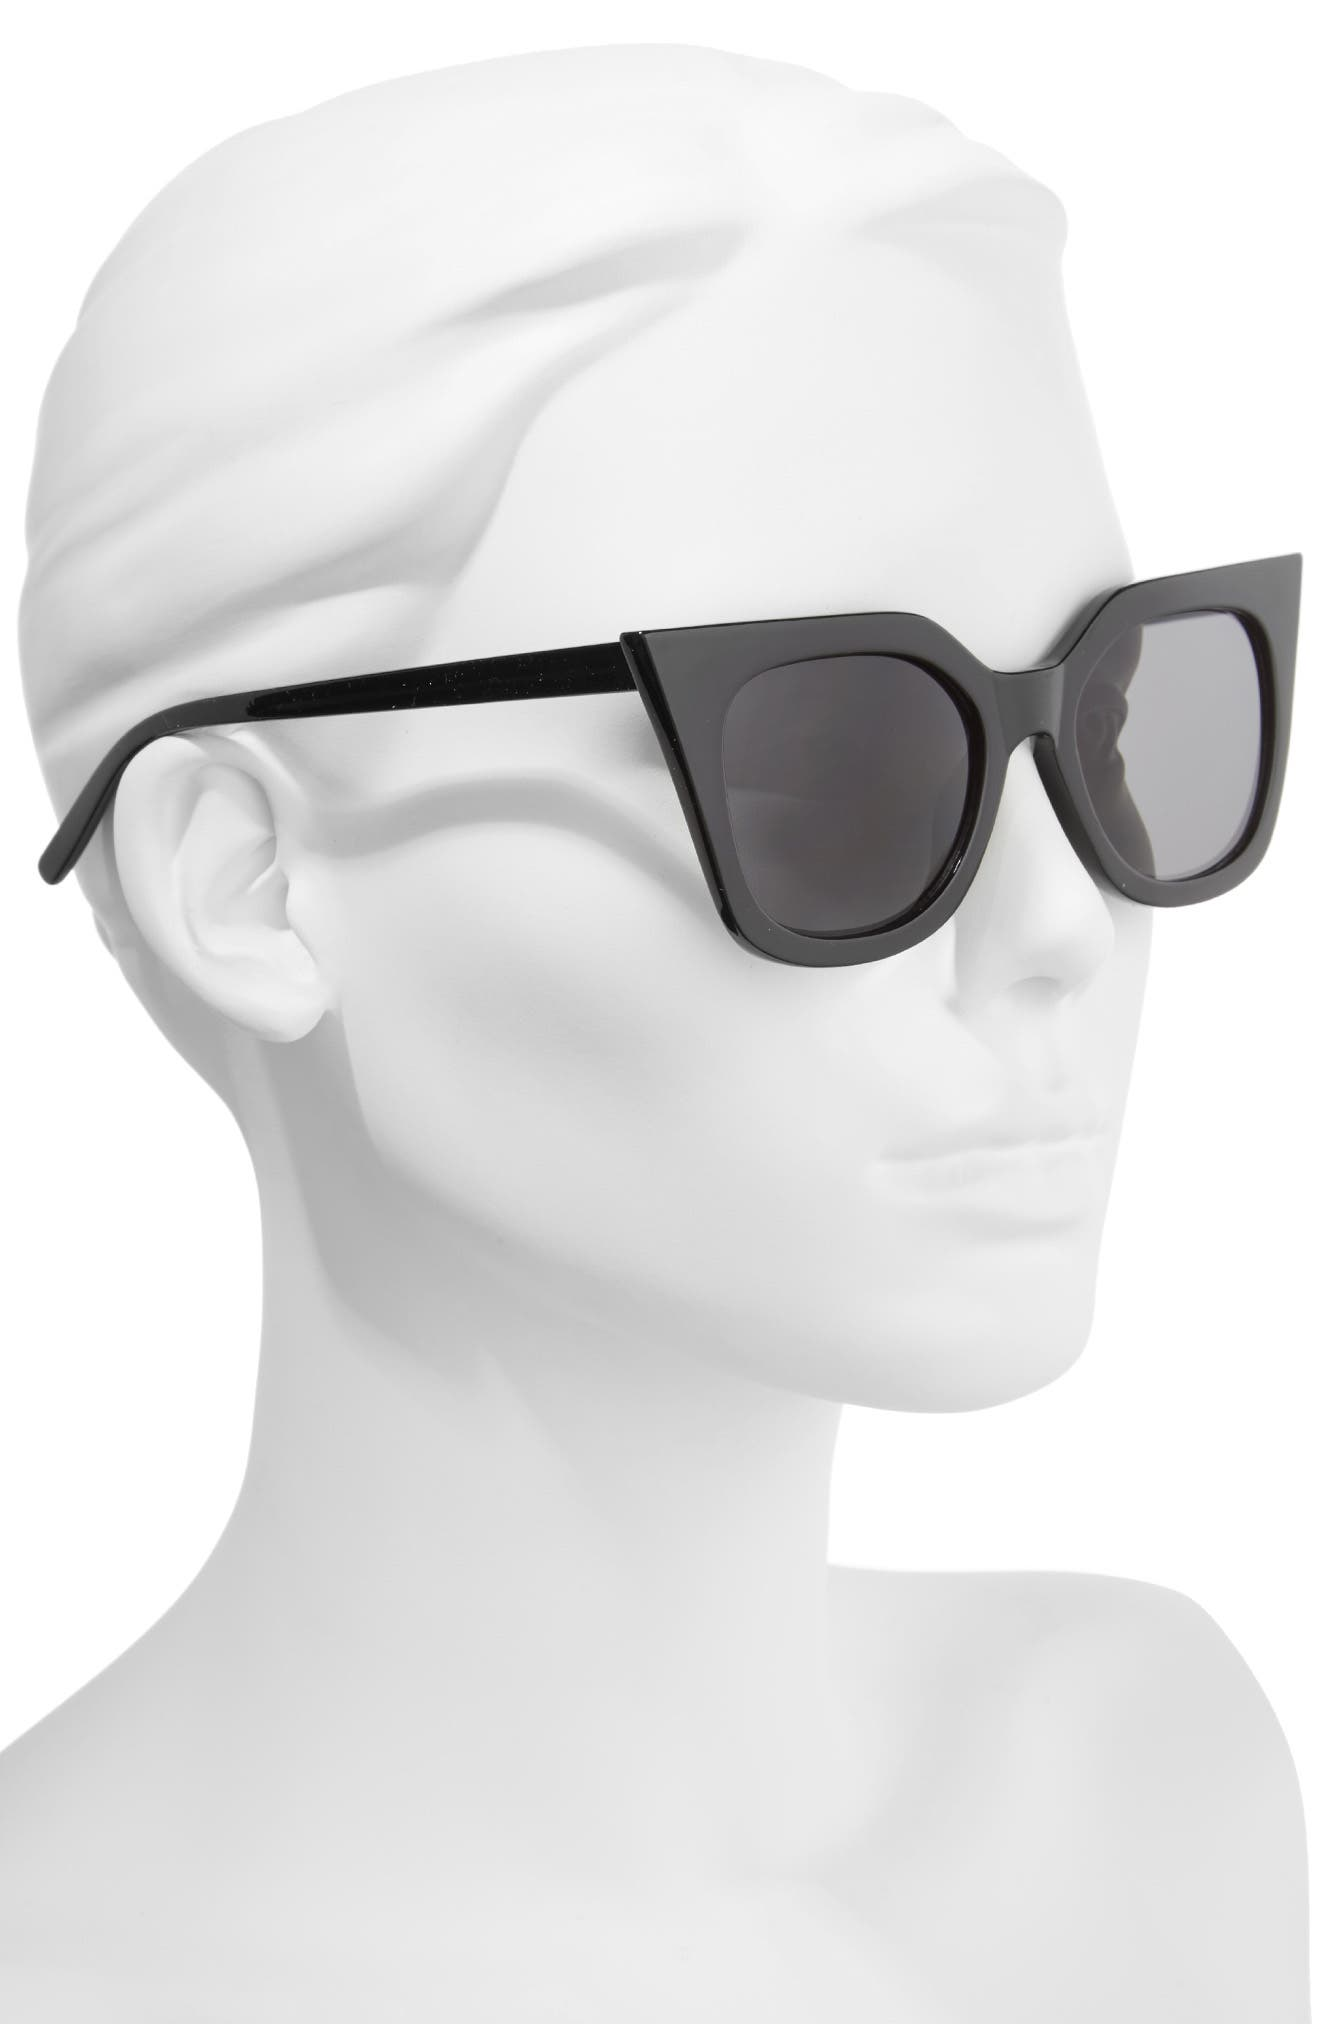 48mm Cat Eye Sunglasses,                             Alternate thumbnail 2, color,                             Black